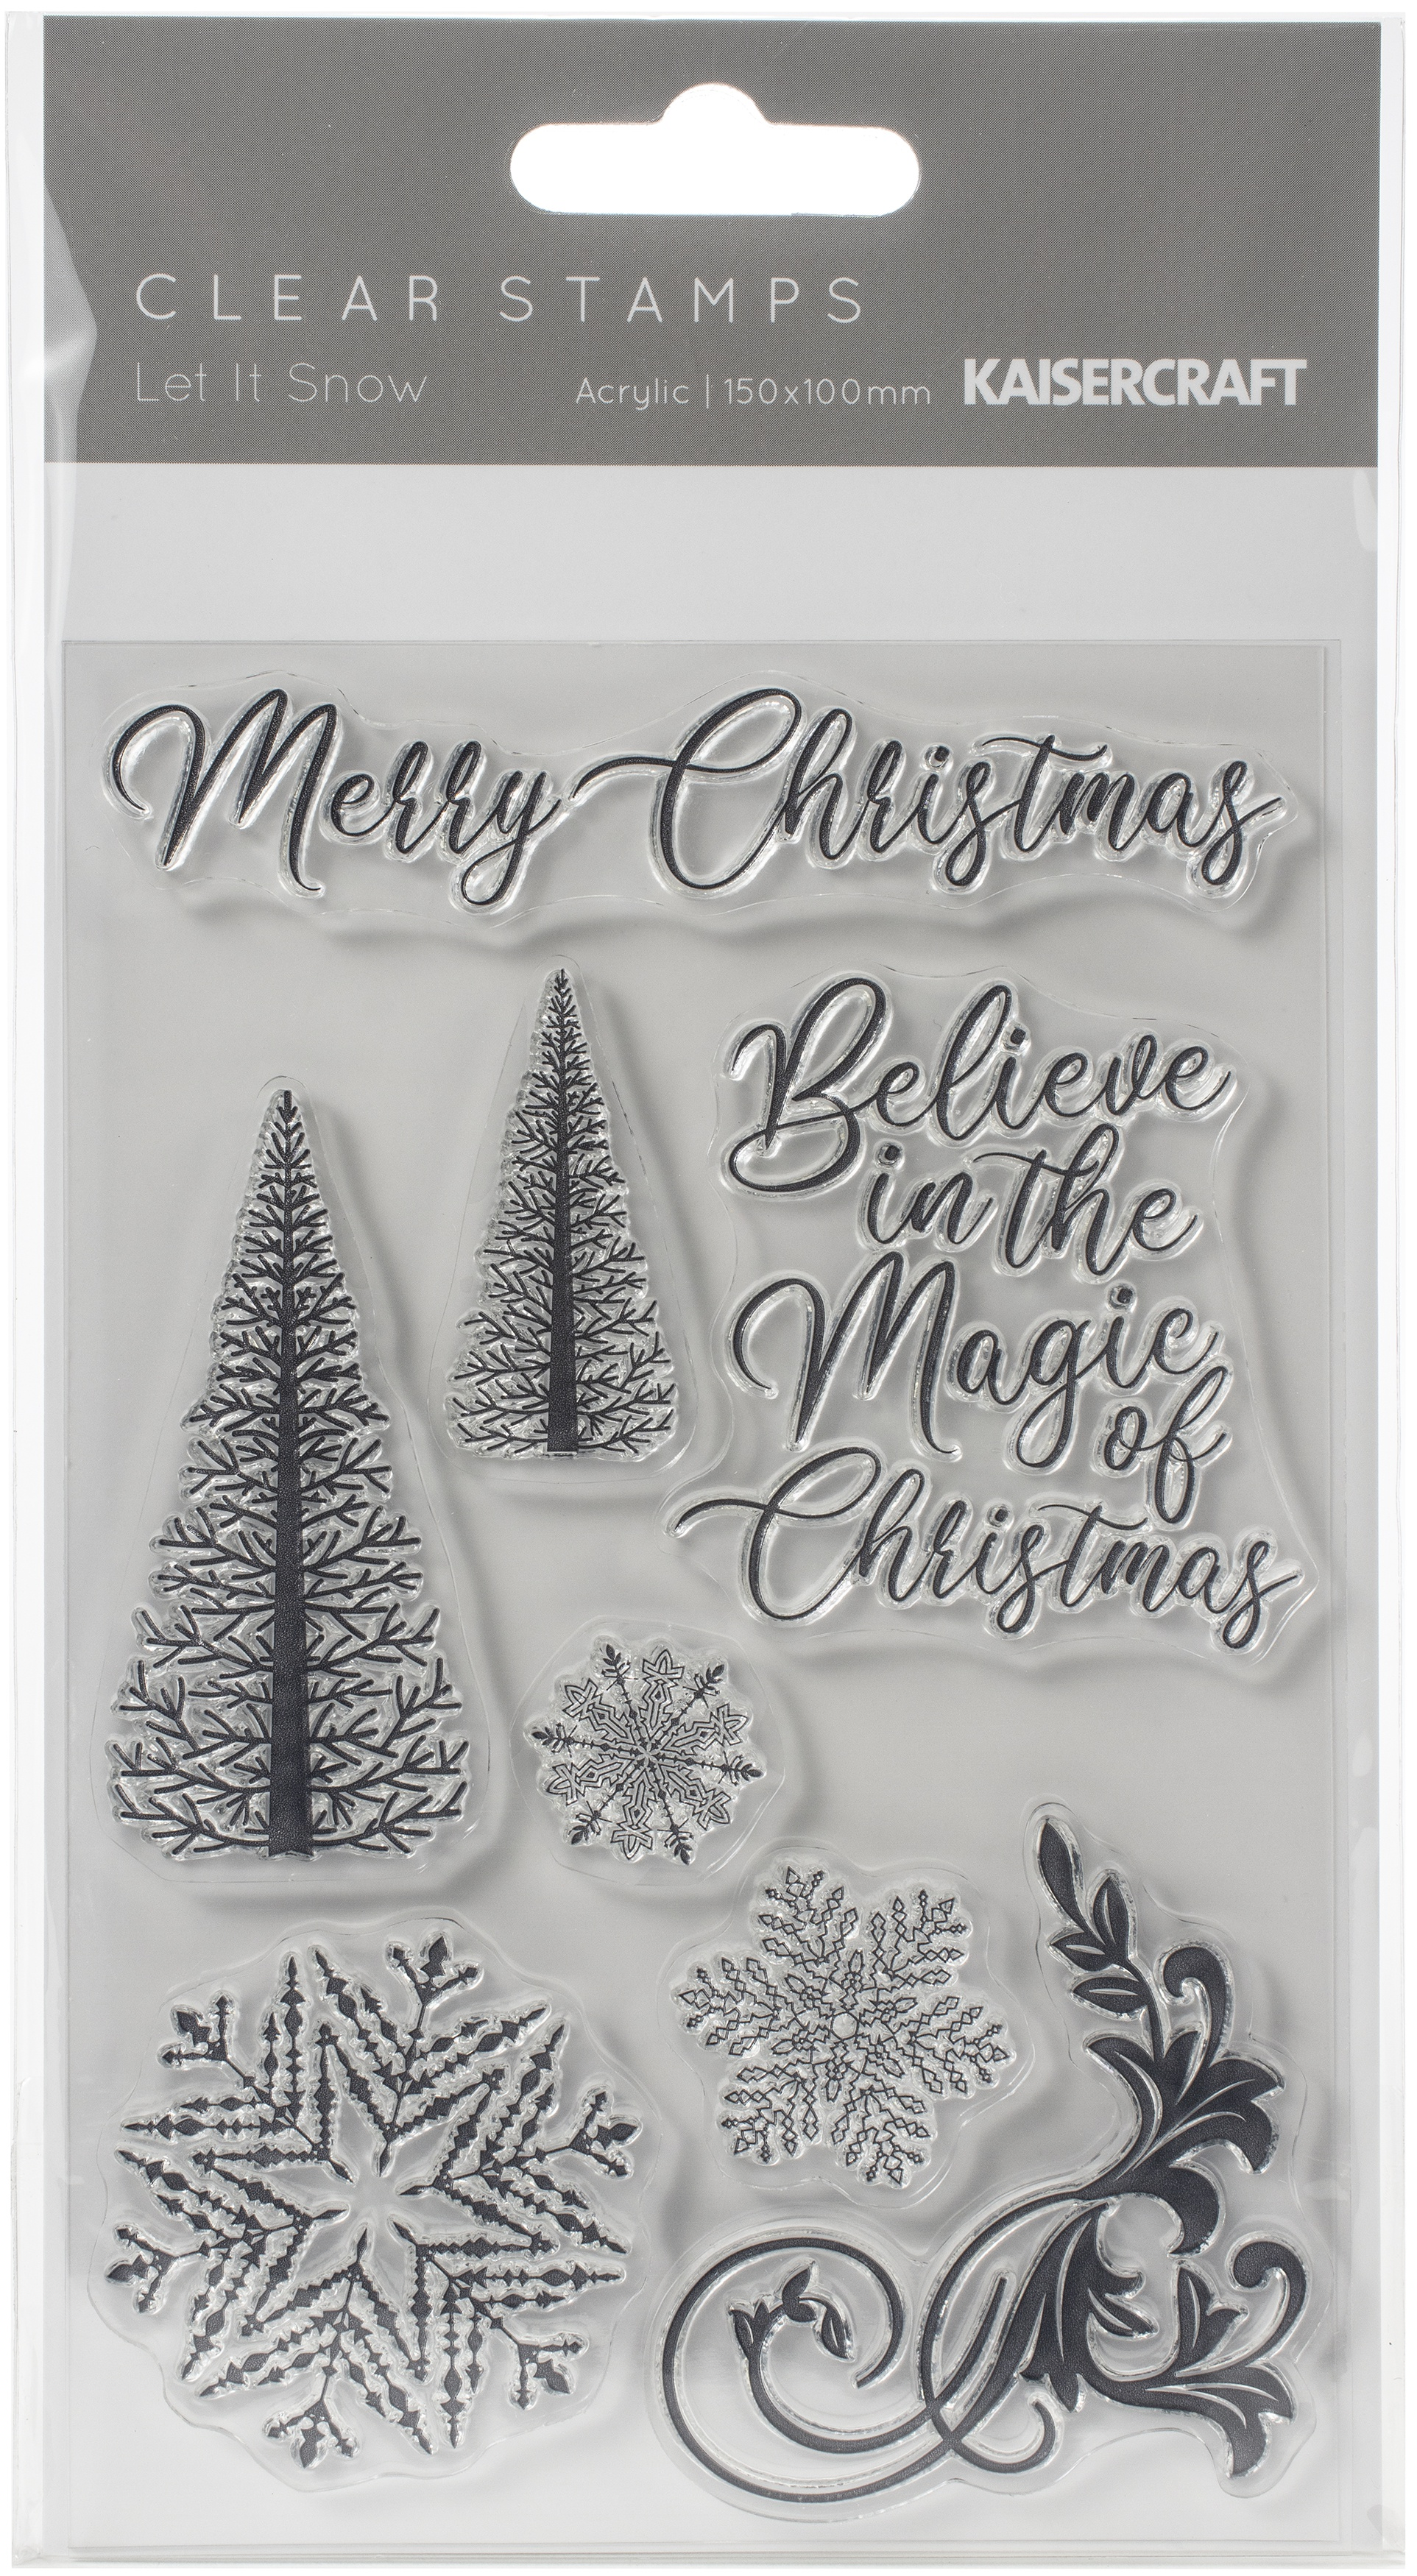 Kaisercraft Clear Stamp 6X4-Let It Snow